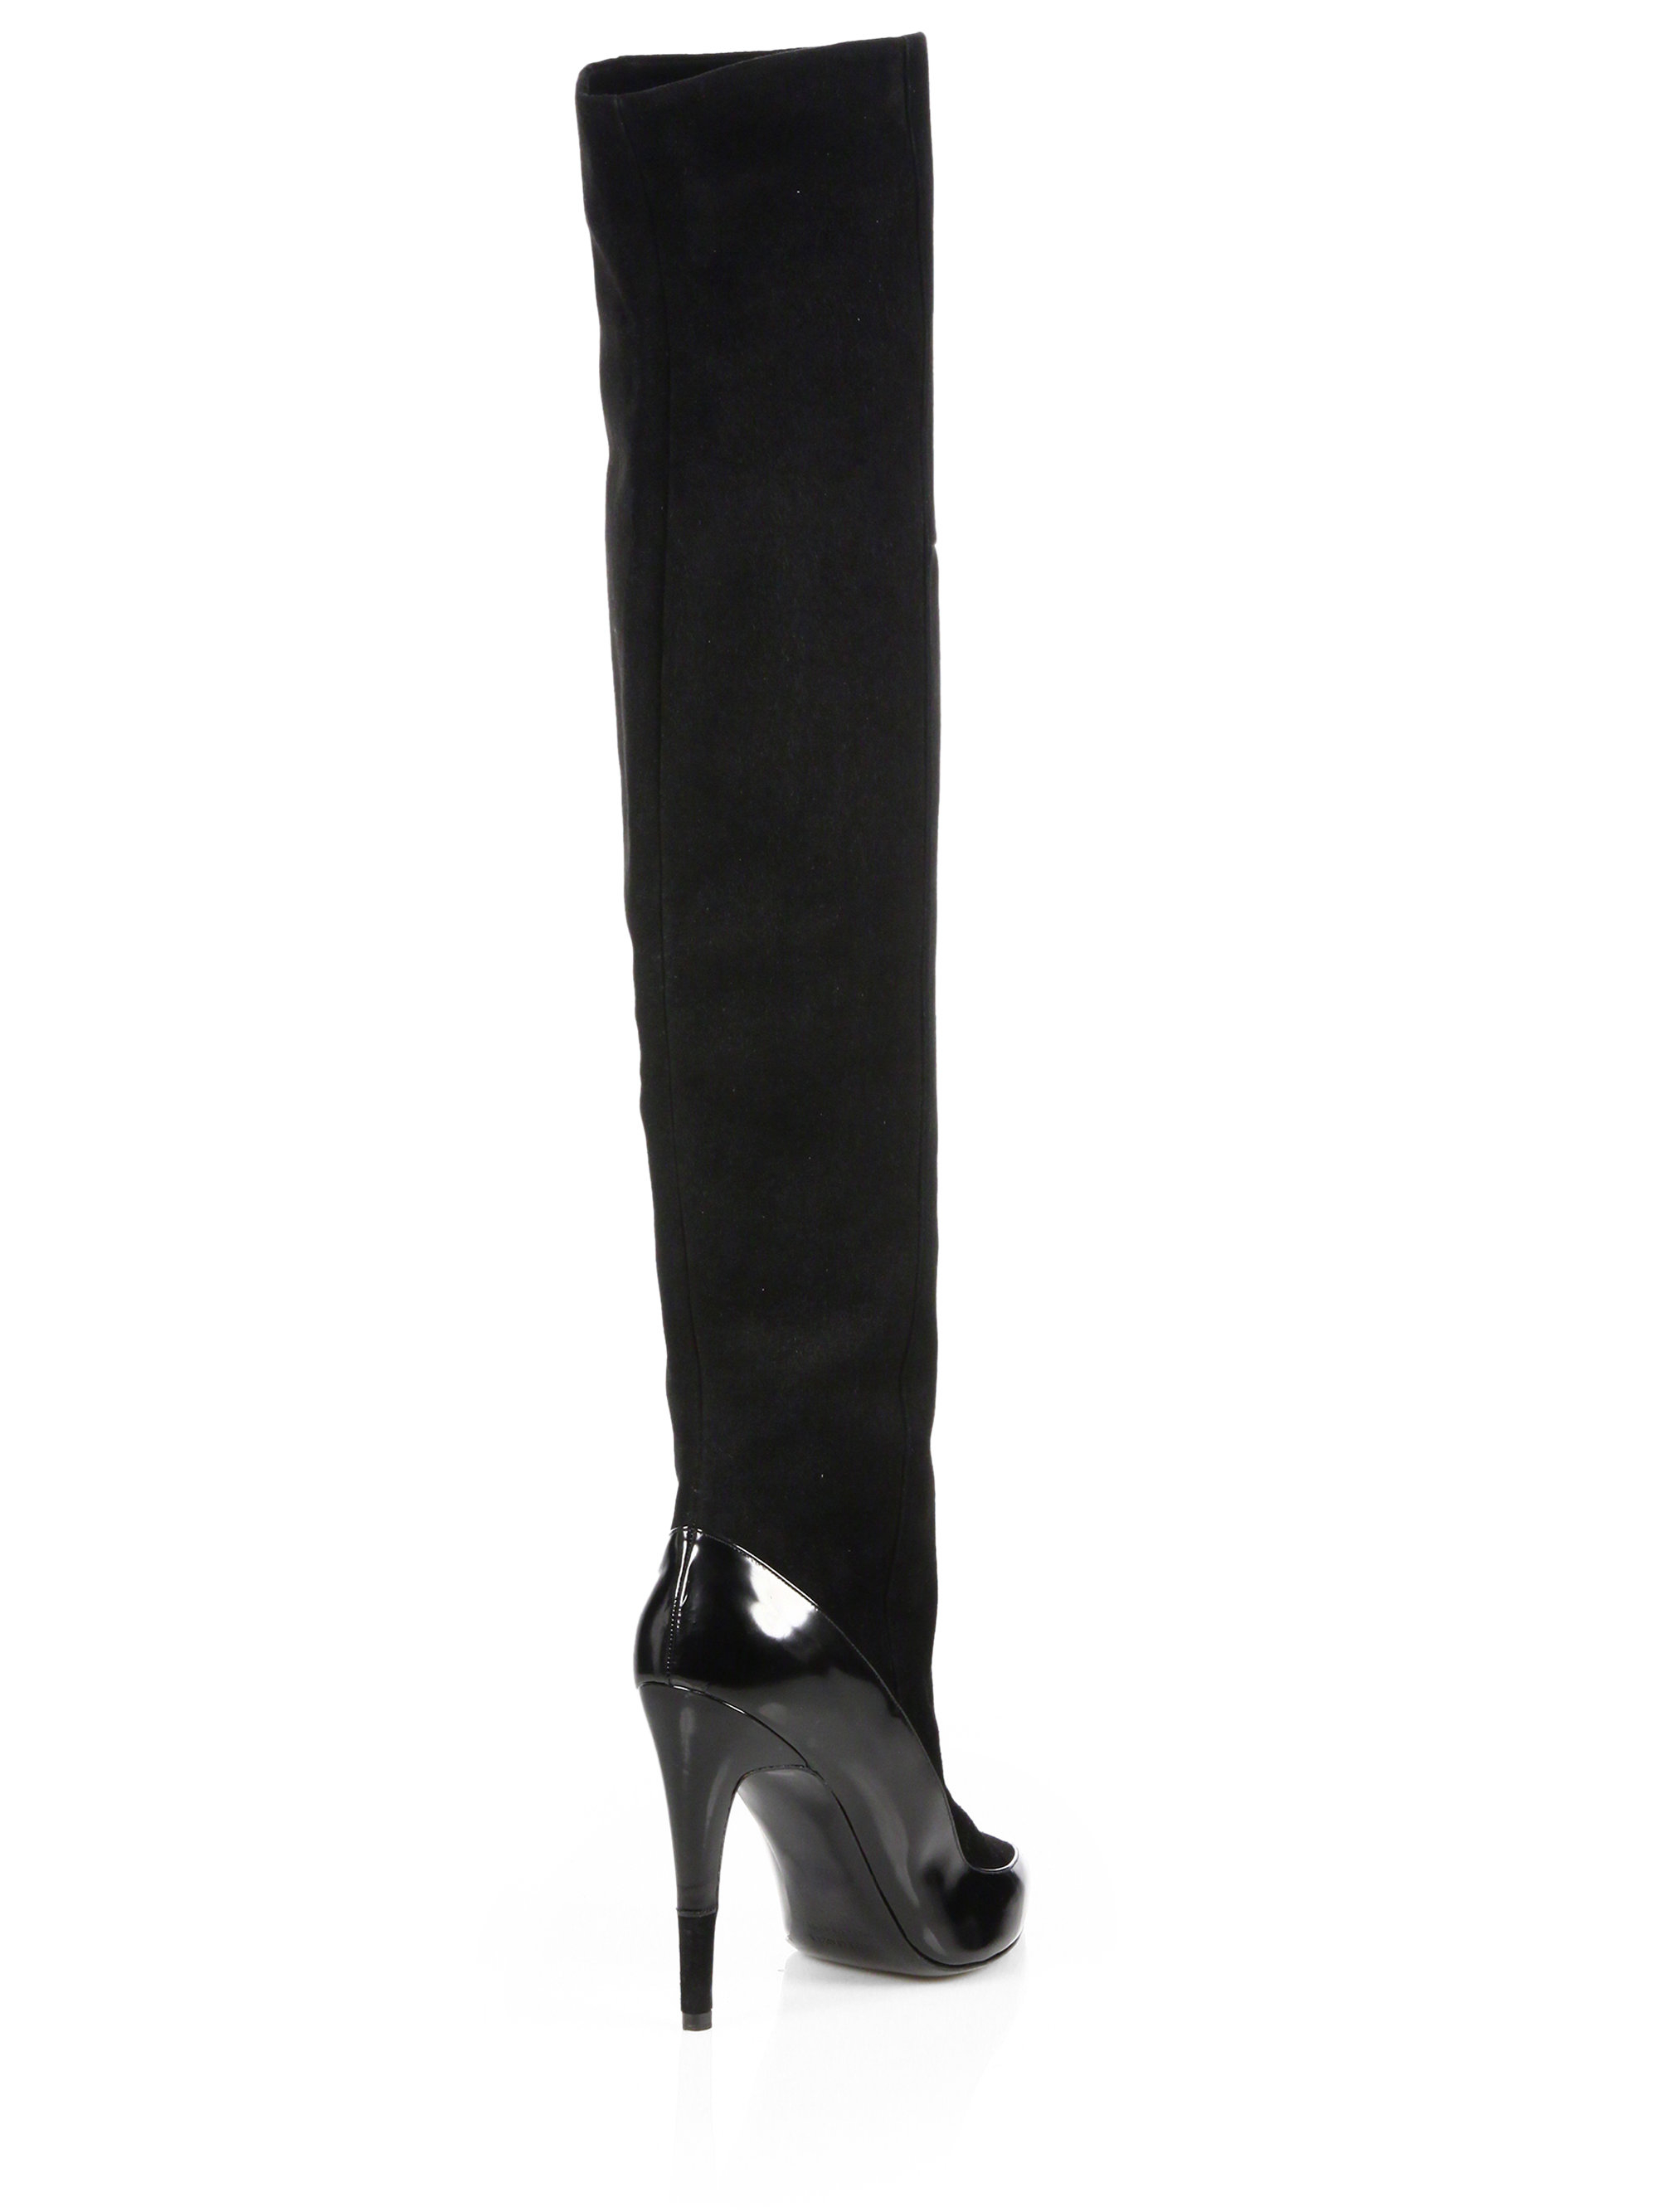 Pierre Hardy Suede Knee-High Boots sale cheap 7DSluUpQT